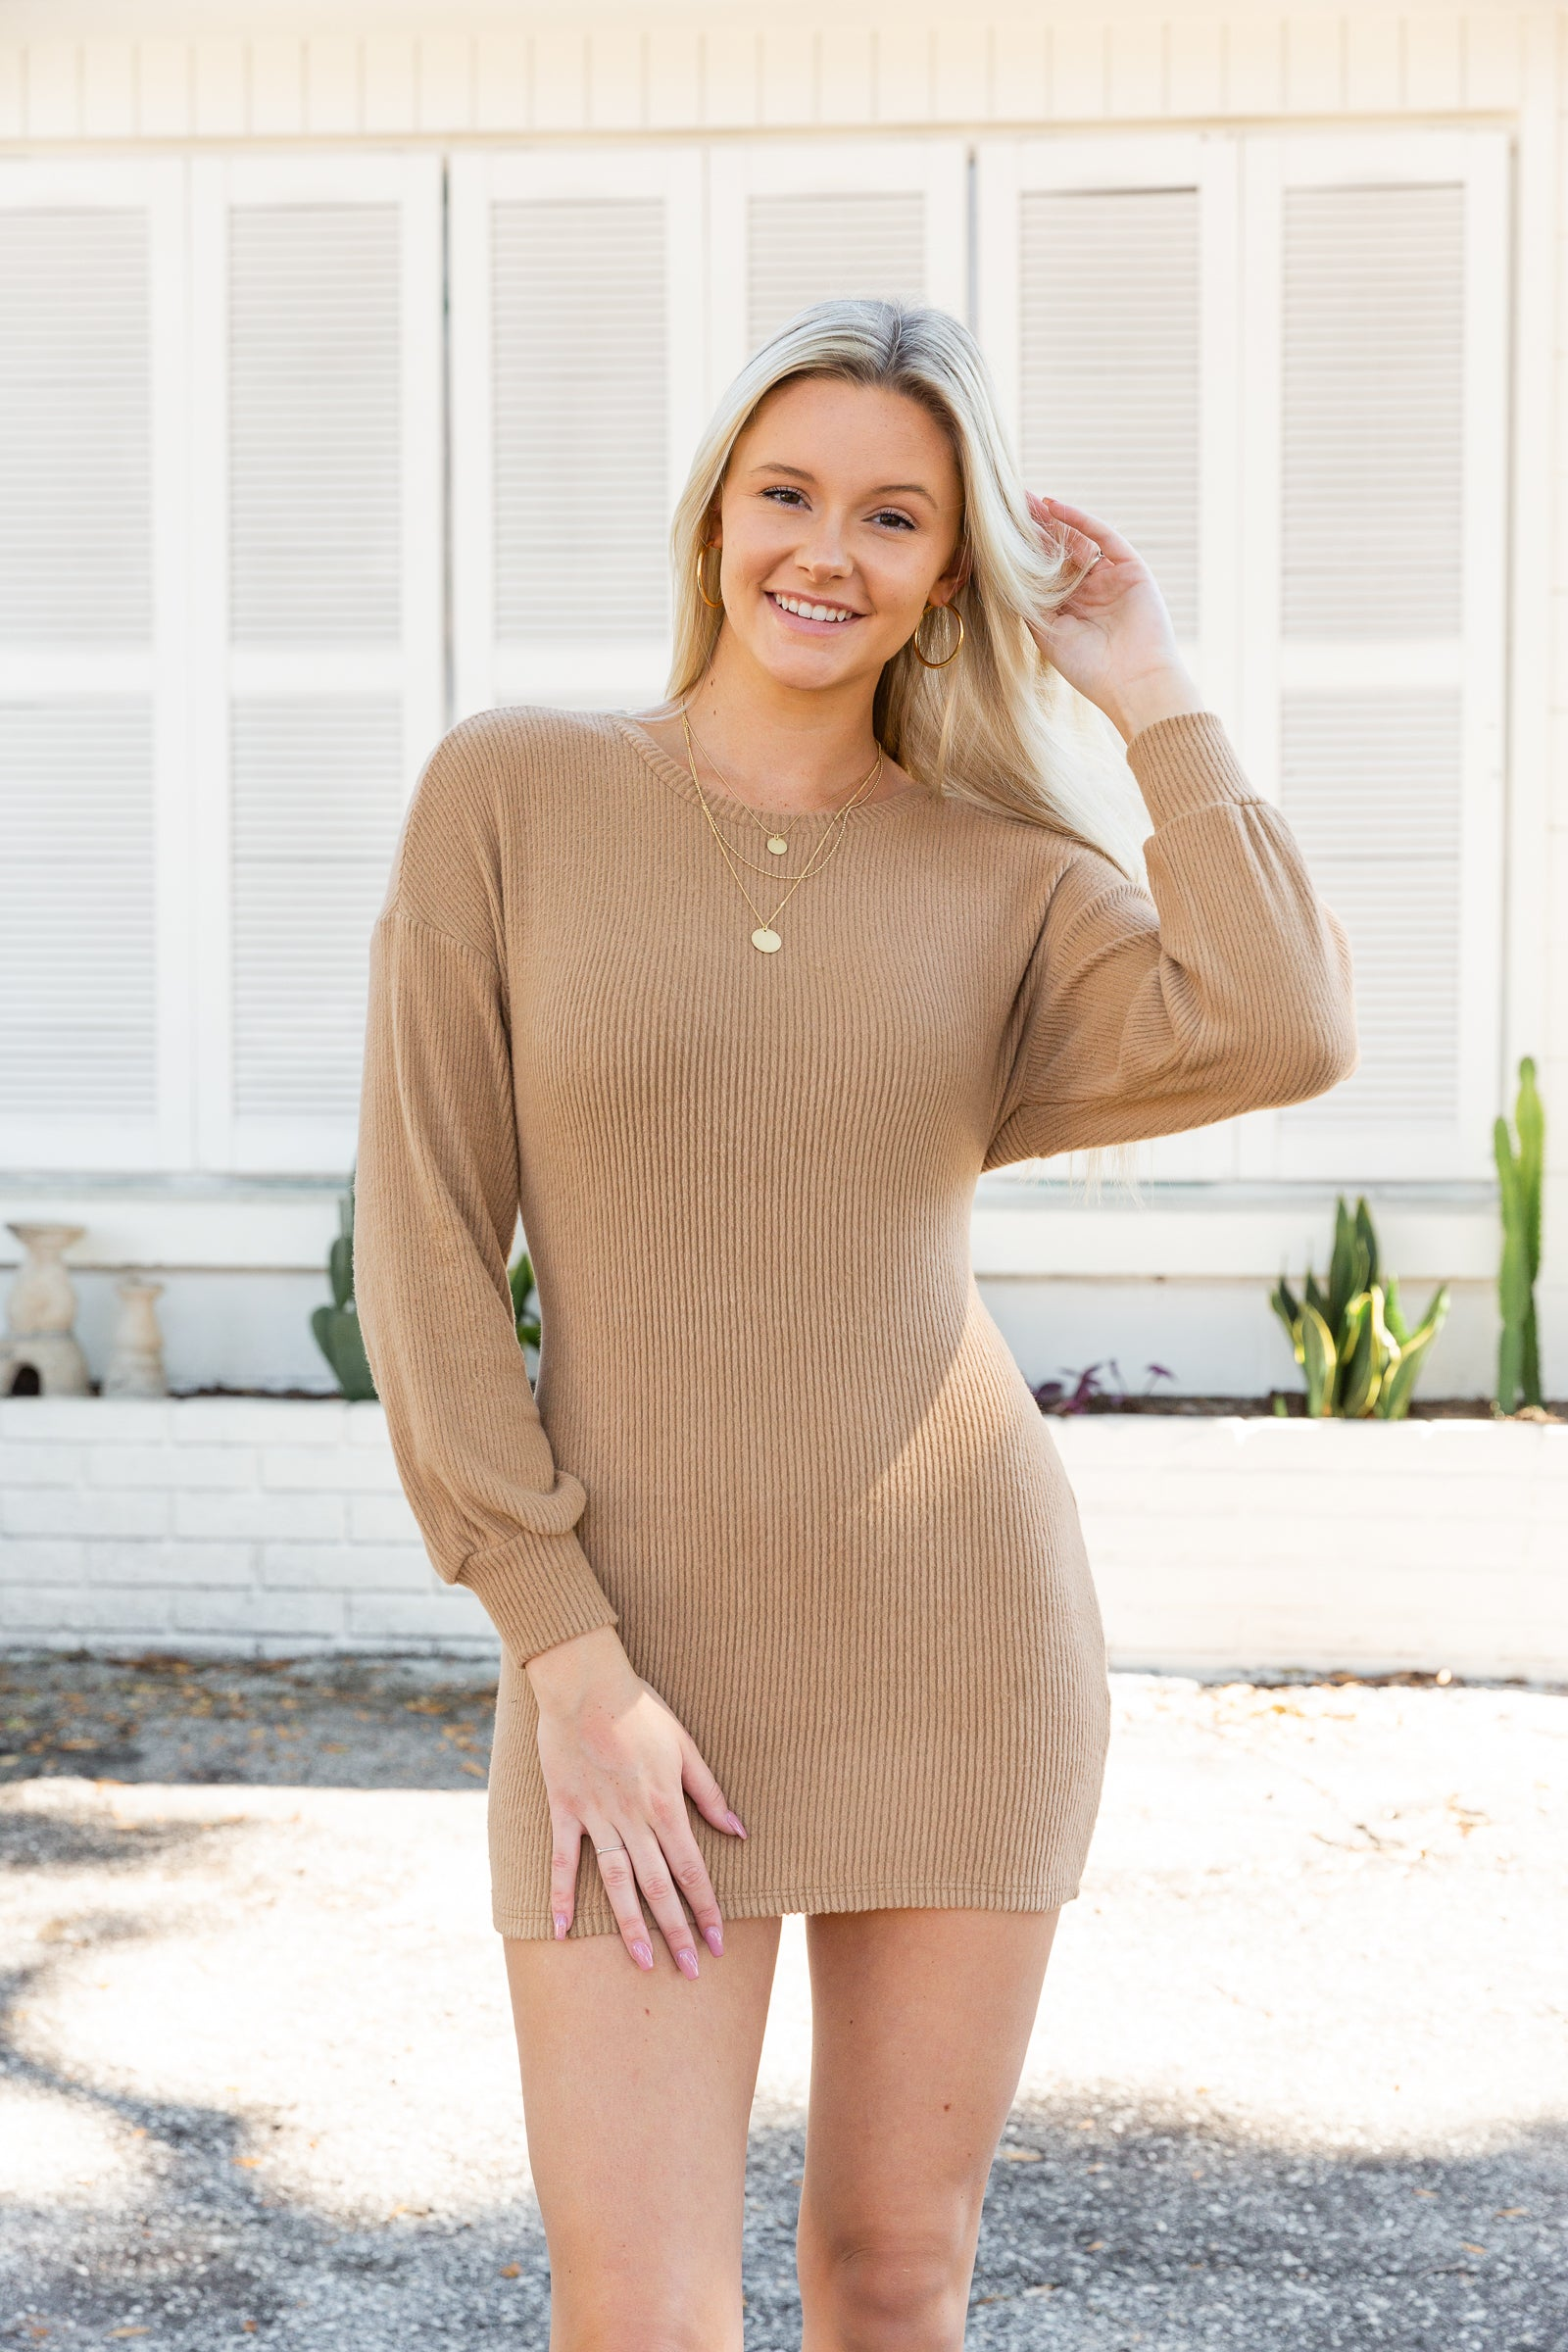 Long banded cuff sleeves attach to a high crew neckline on a curve-accentuating bodice and mini skirt silhouette. This sweater dress has an exposed open back that is secured with a tie hem.